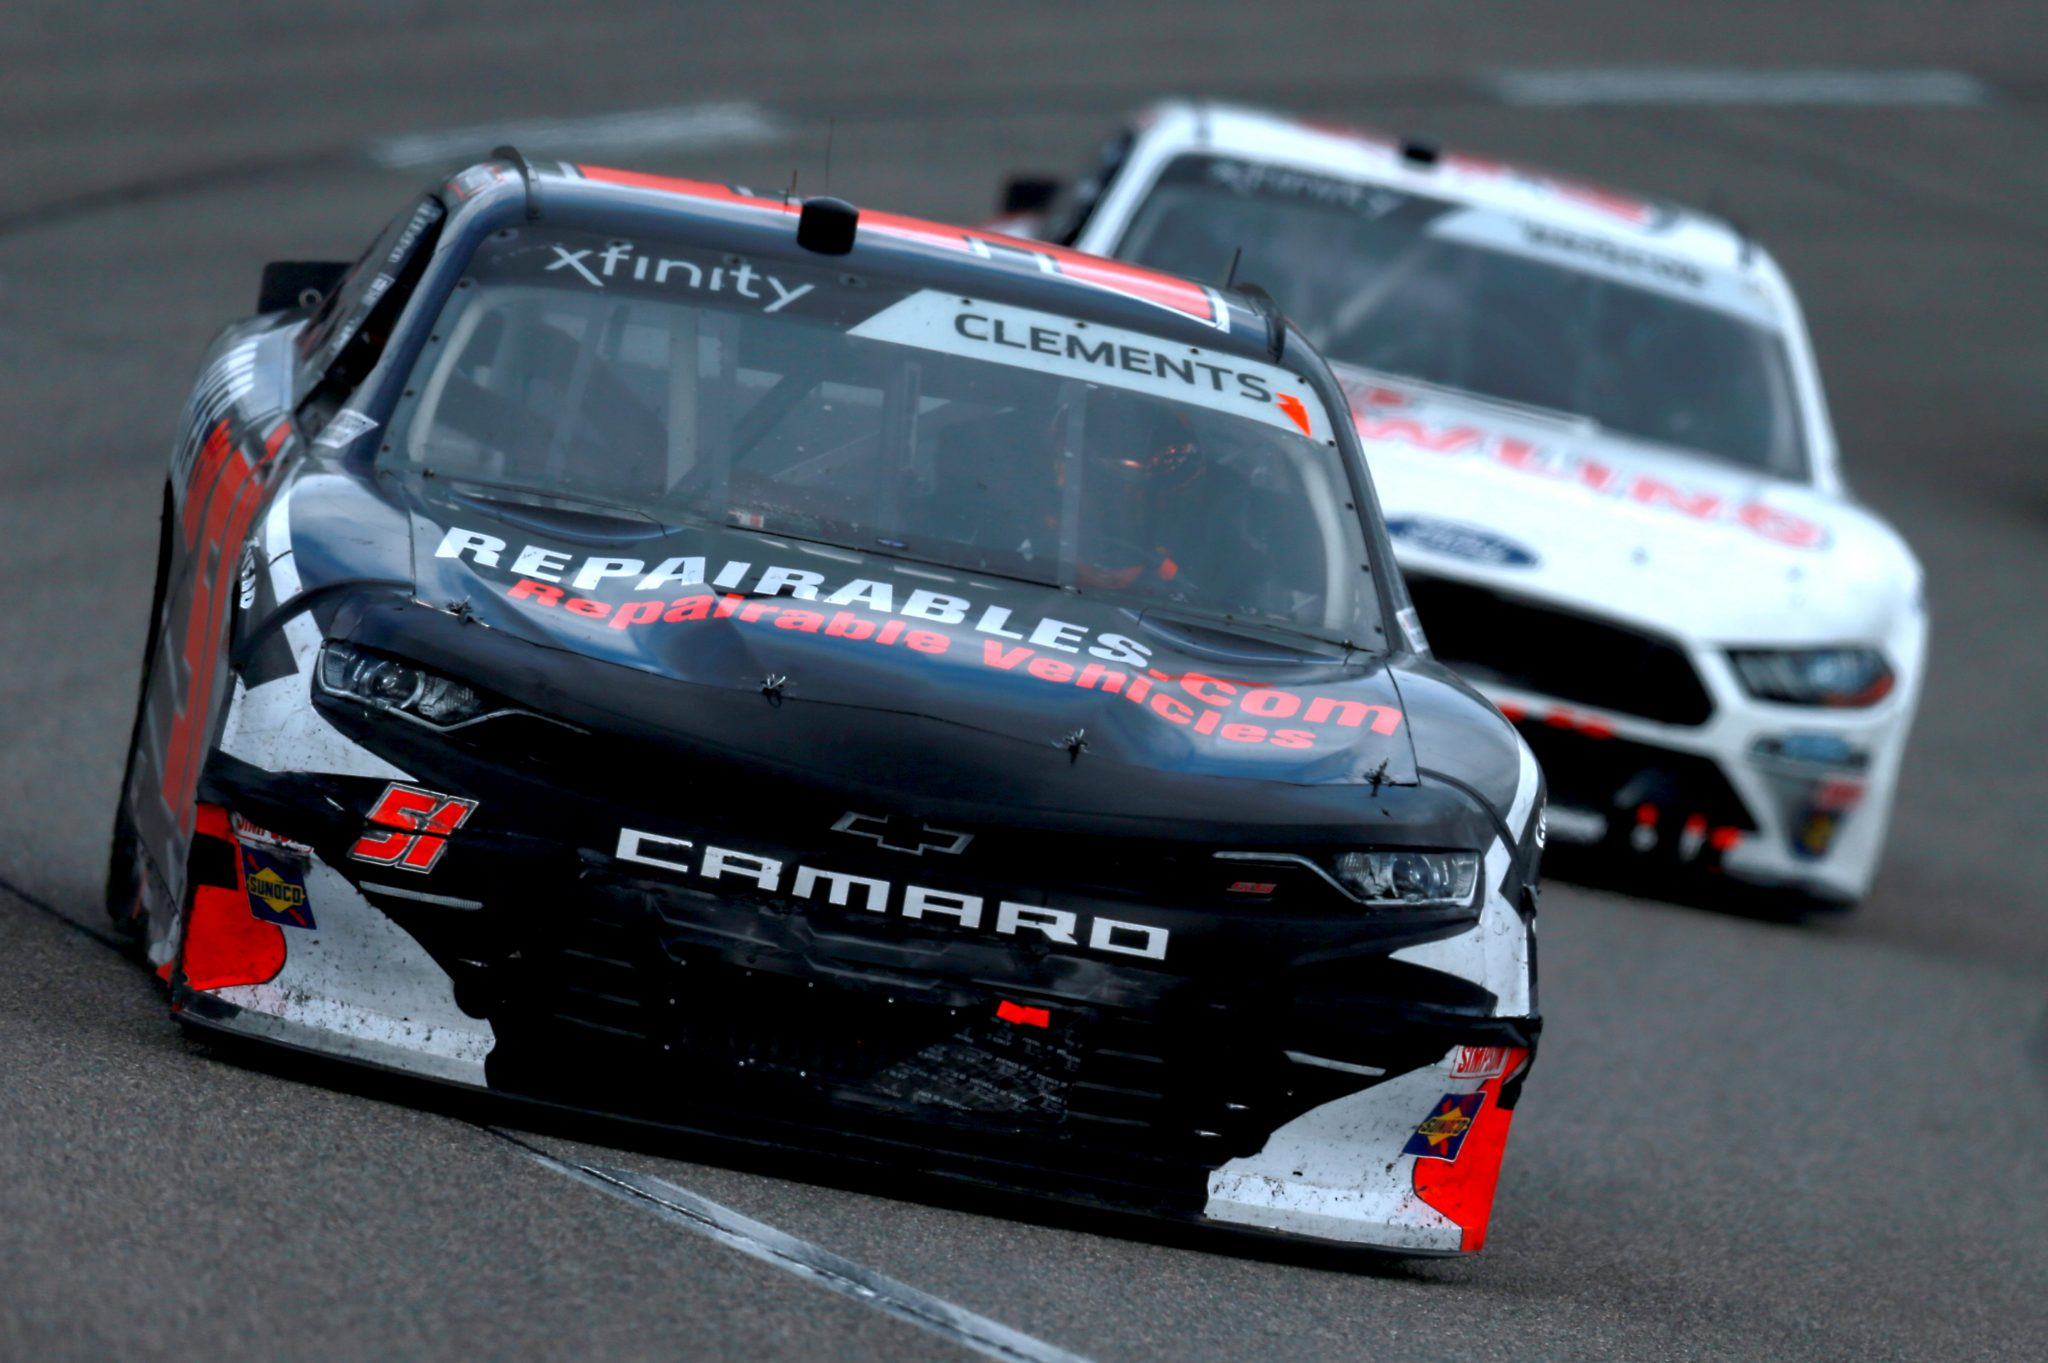 RICHMOND, VIRGINIA - SEPTEMBER 12: Jeremy Clements, driver of the #51 Repairables.com Chevrolet, drives during the NASCAR Xfinity Series Virginia is for Racing Lovers 250 at Richmond Raceway on September 12, 2020 in Richmond, Virginia. (Photo by Sean Gardner/Getty Images) | Getty Images